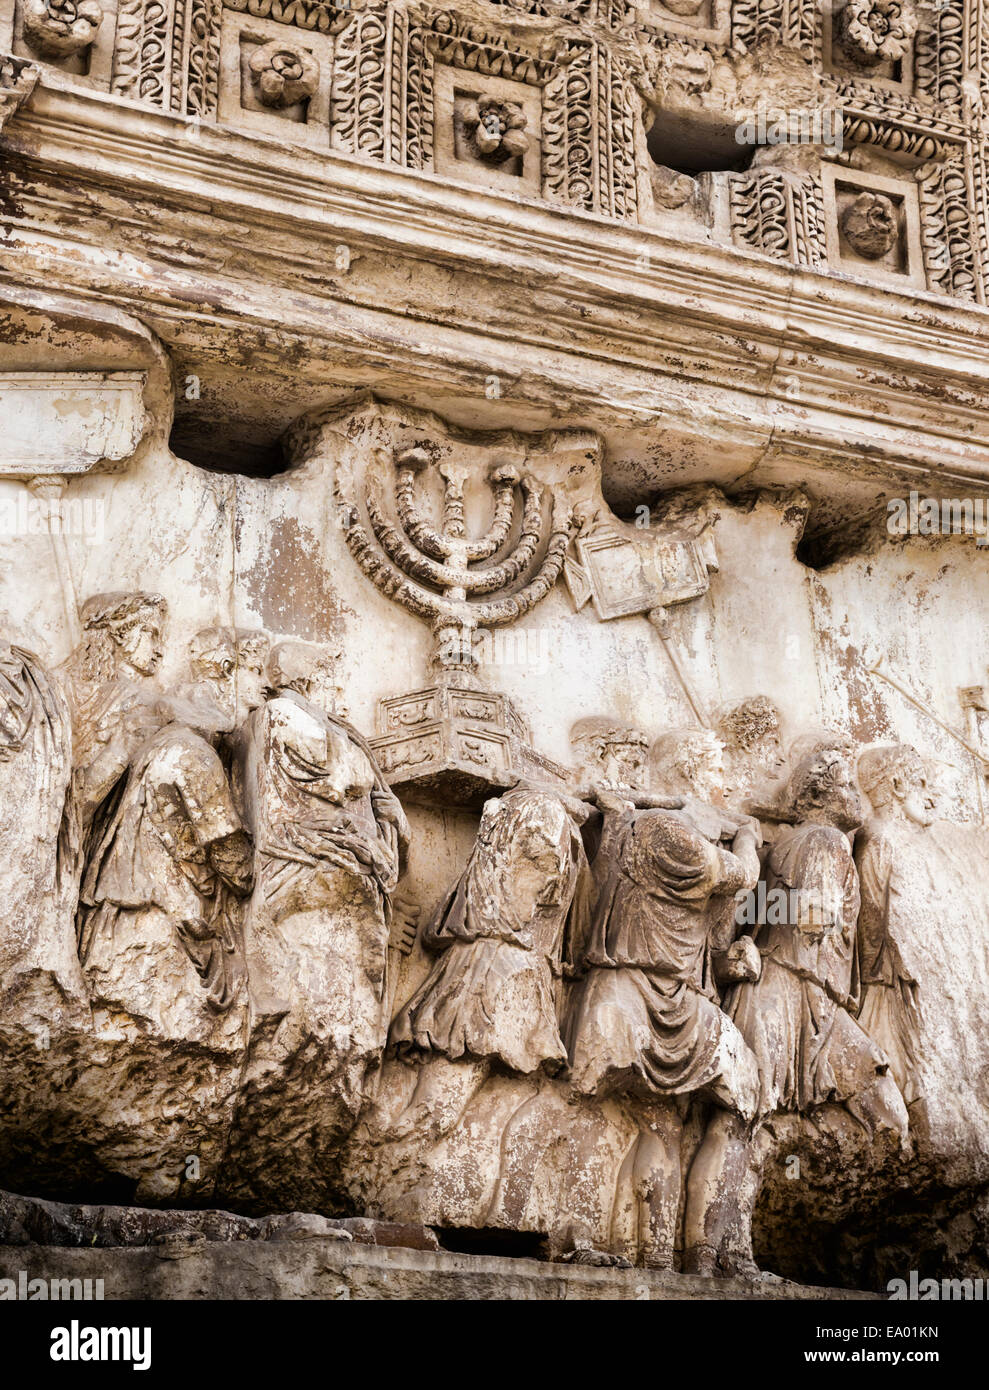 Rome, Italy.  The procession panel on the Arch of Titus in the Roman Forum, commemorating conquest of Judea. - Stock Image